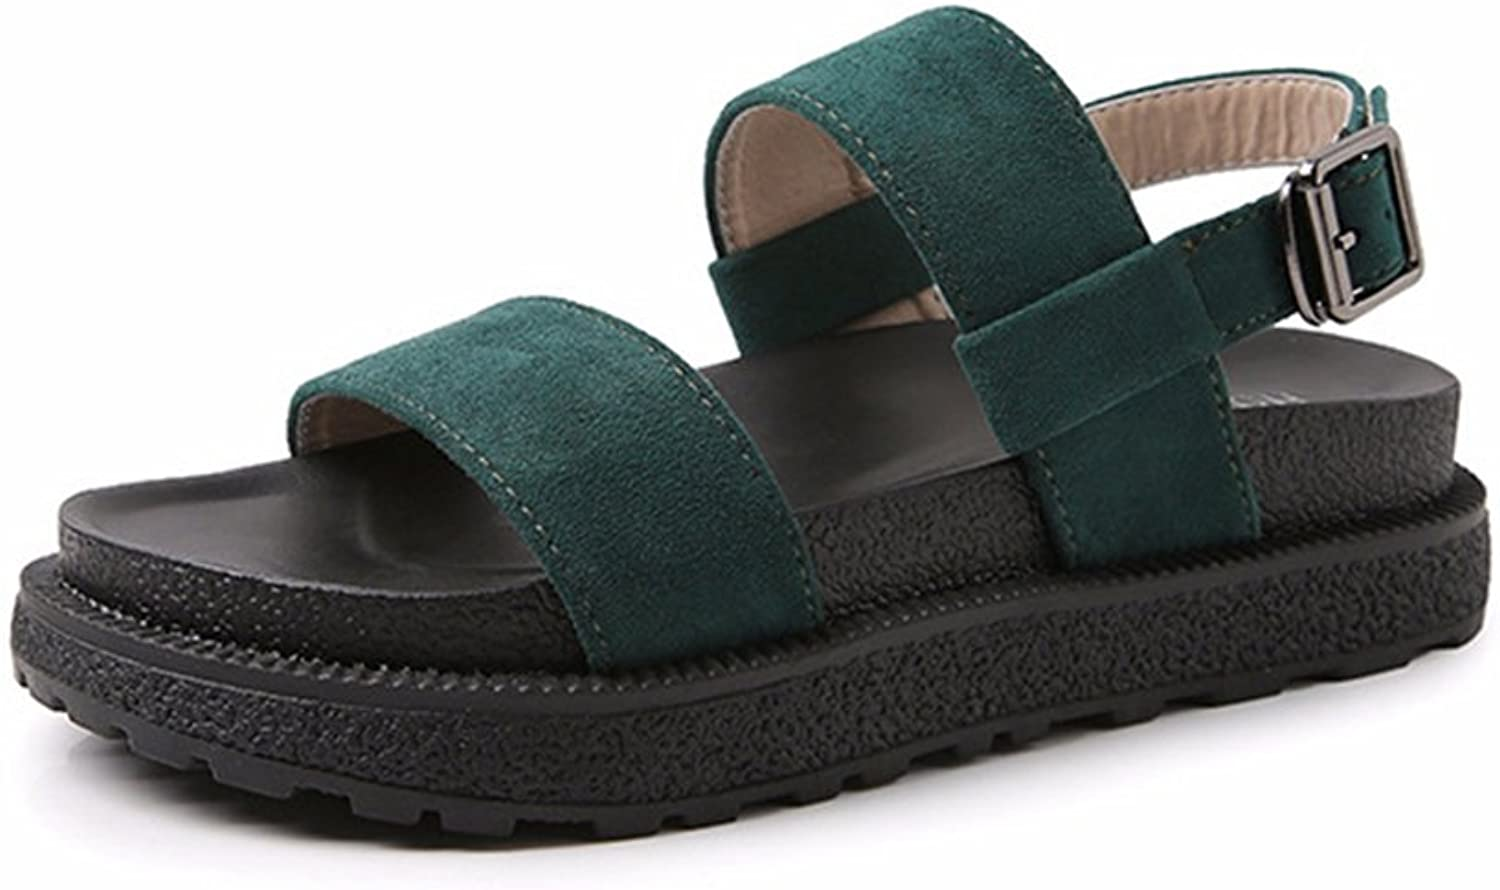 Tuoup Womens Ankle Strap Leather Fashion Sandals Sandles